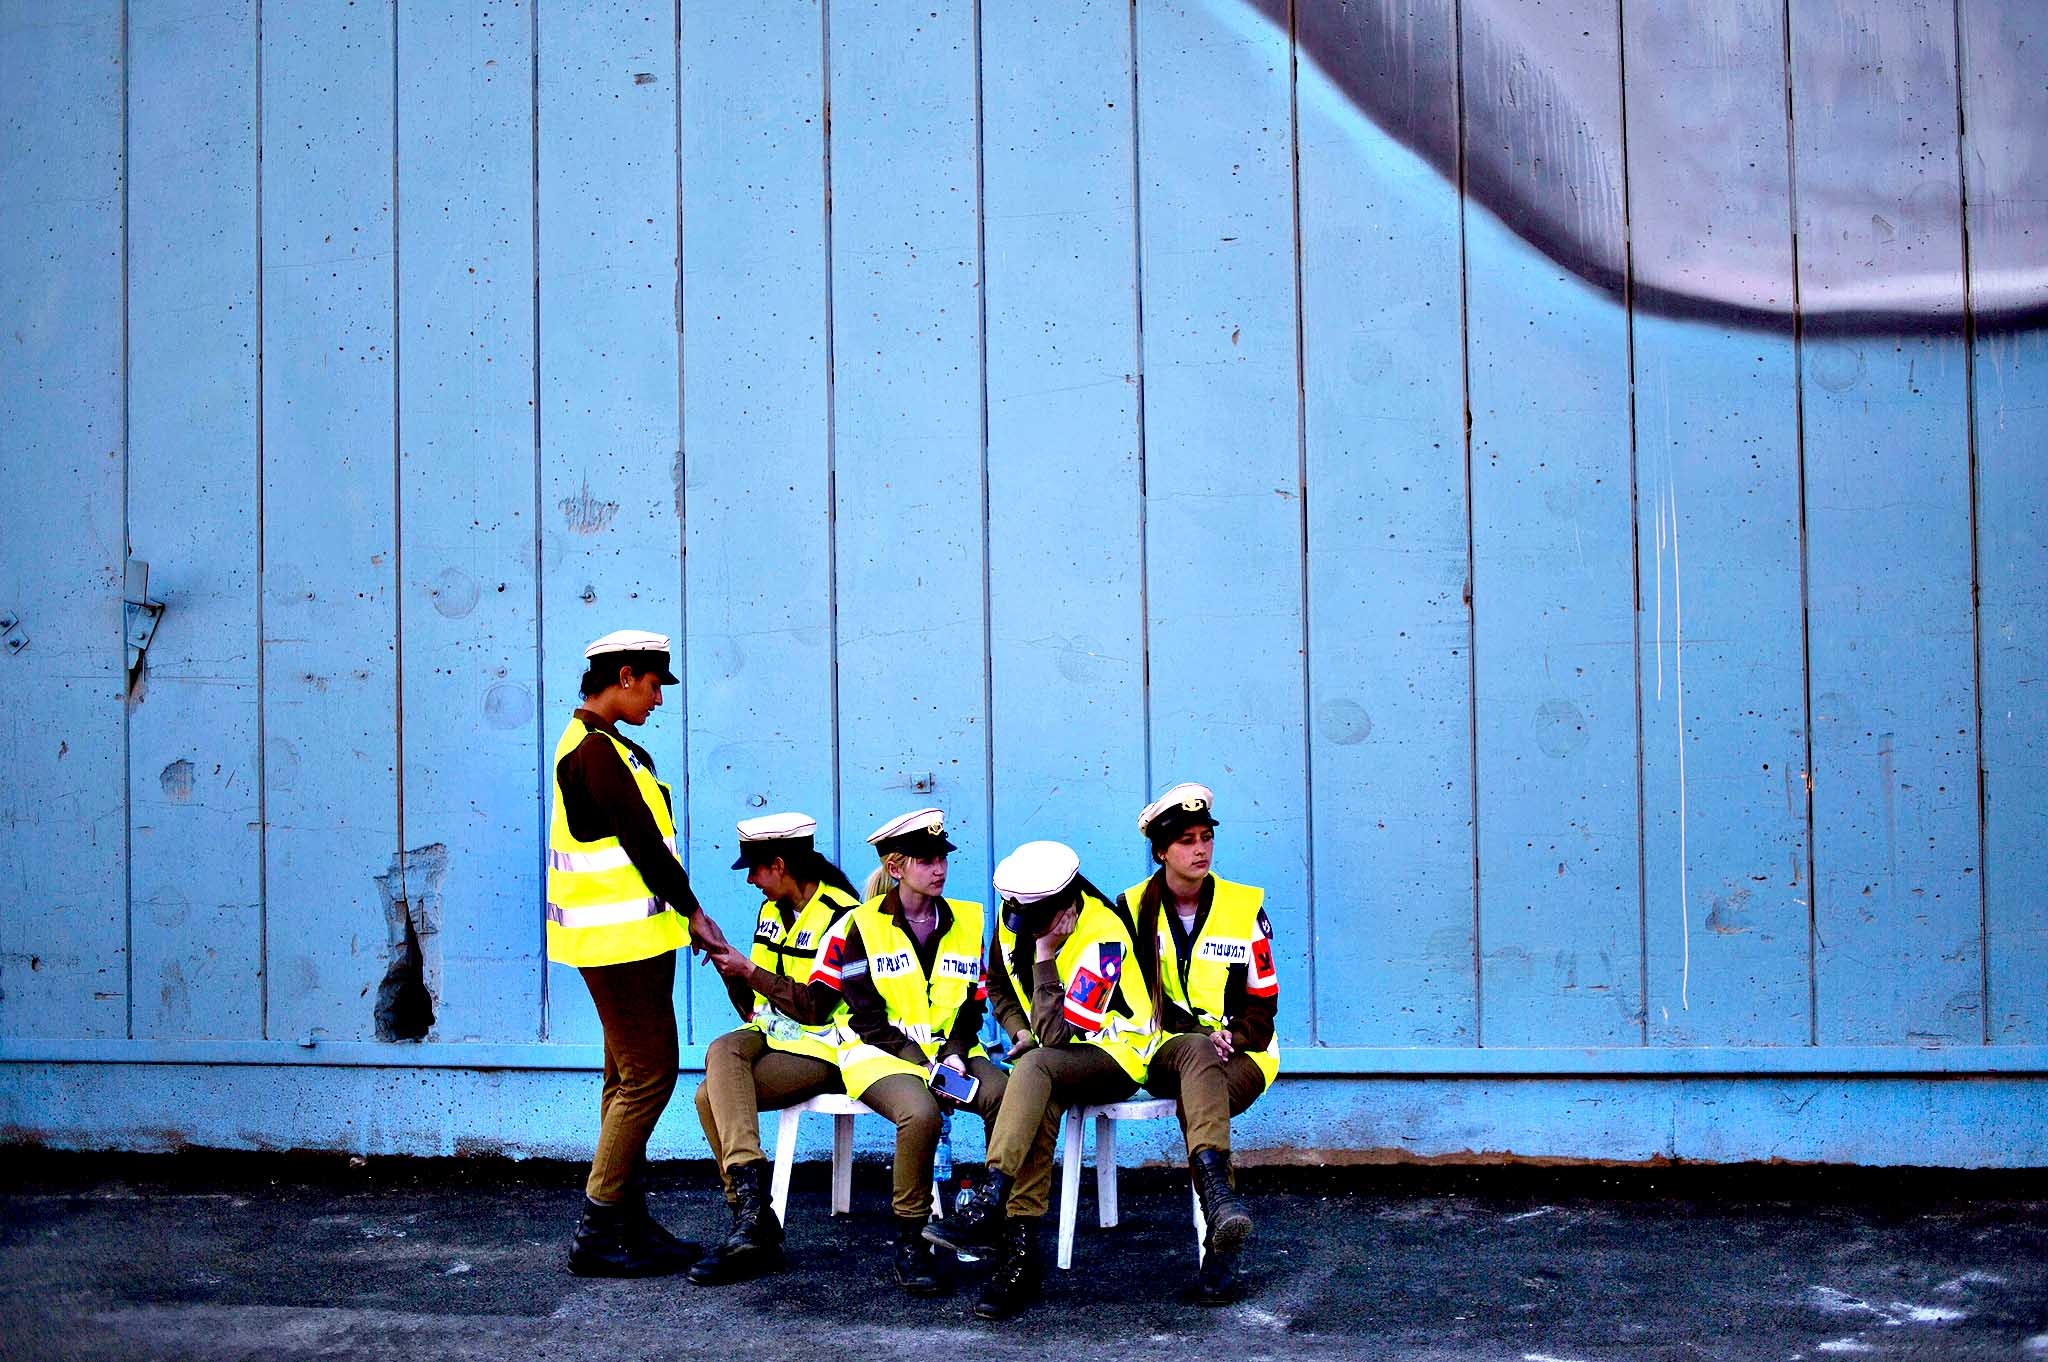 Israeli military policewomen wait for the display of rockets after being seized from the Panama-flagged KLOS C civilian cargo ship that Israel intercepted last Wednesday off the coast of Sudan, at a military port in the Red Sea city of Eilat, southern Israel, Monday, March 10, 2014. Israel has alleged the shipment was orchestrated by Iran and was intended for Islamic militants in Gaza, a claim denied by Iran and the rockets' purported recipients. Questions remain, including how the rockets would have been smuggled into Gaza, largely cut off from the world by a border blockade enforced by Israel and Egypt.